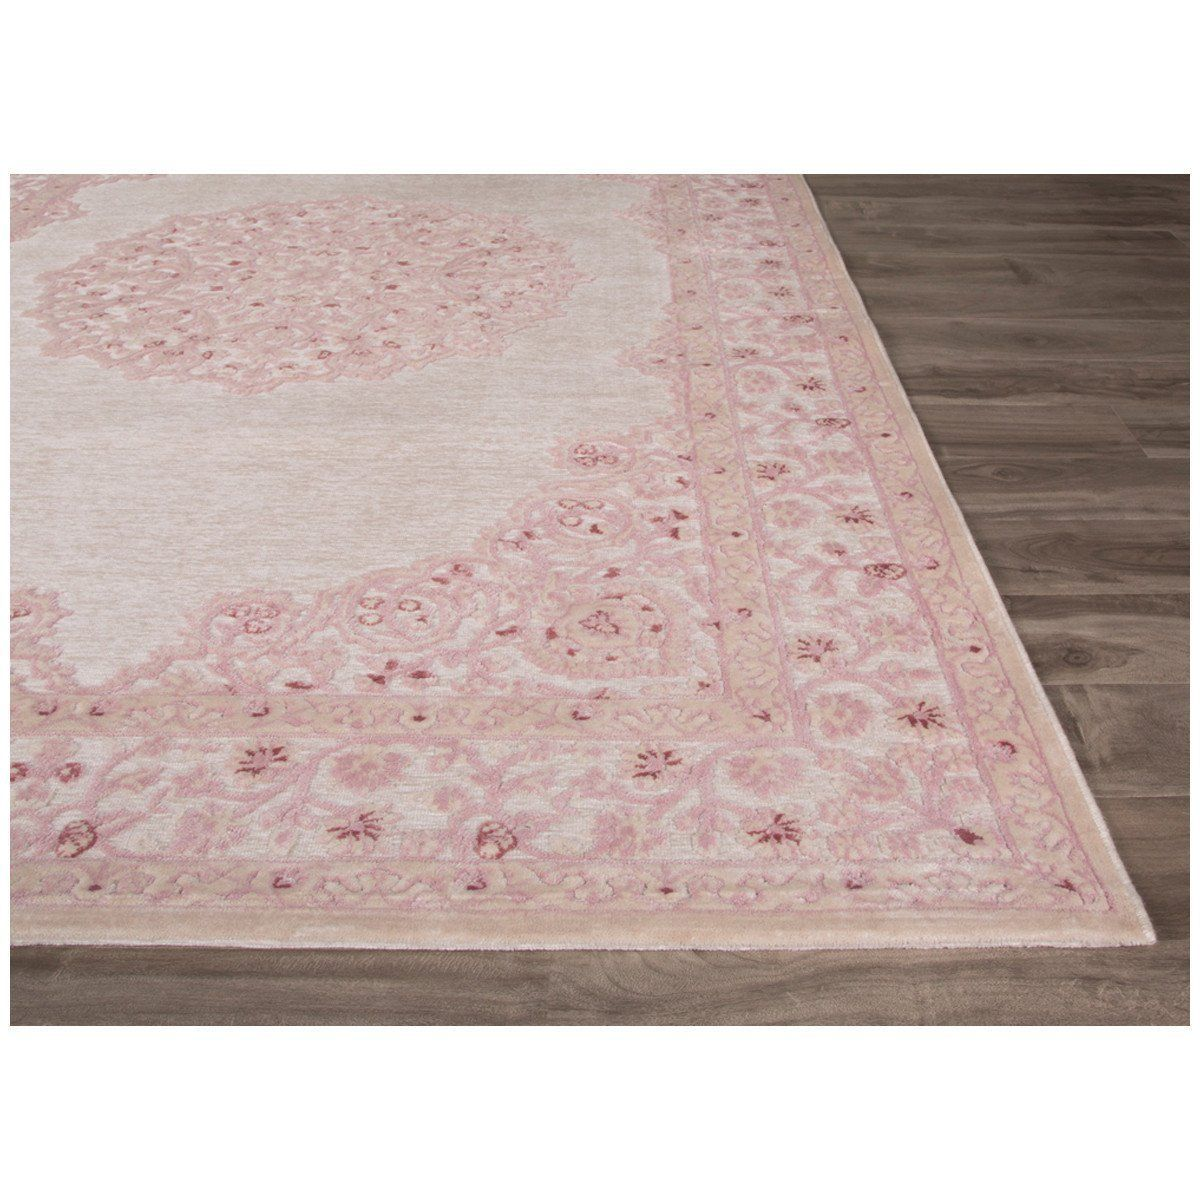 Jaipur Fables Malo Rug Products Rugs Pink Rug White